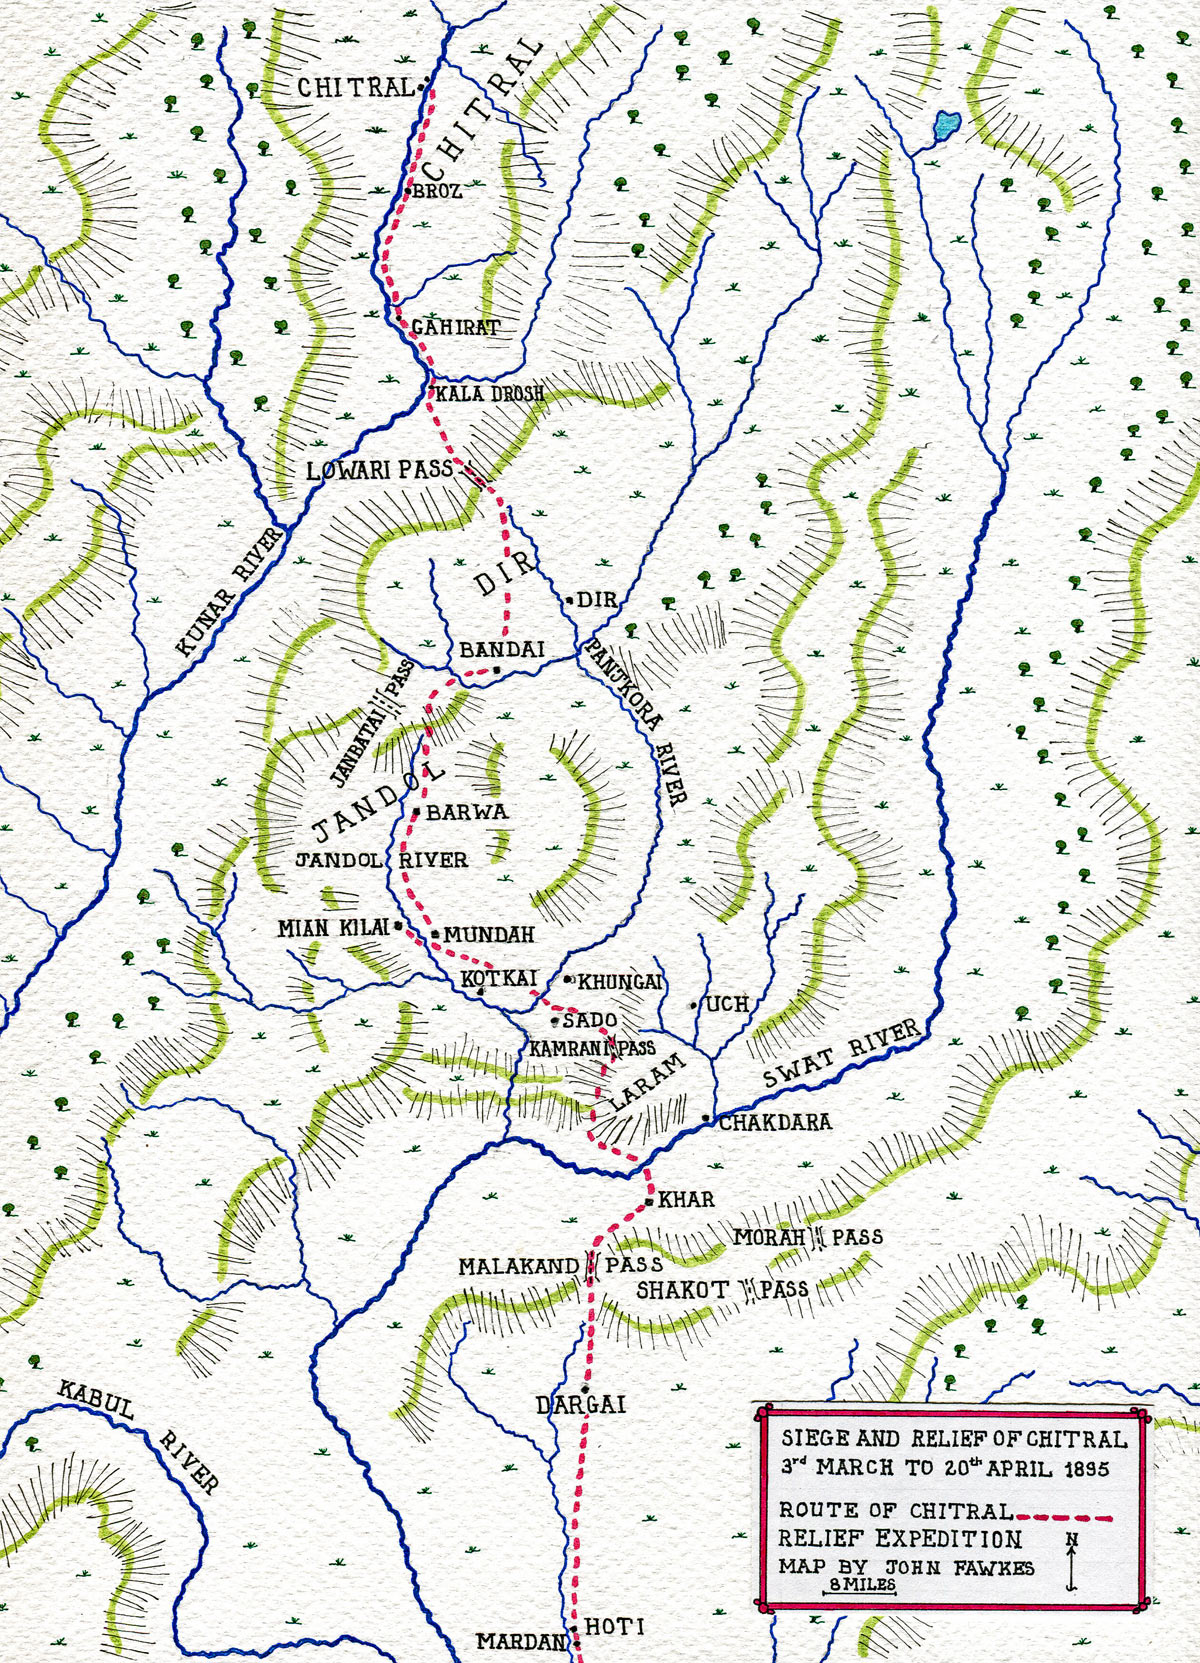 Map of the route taken by the Chitral Relief Expedition: Siege and Relief of Chitral, 3rd March to 20th April 1895 on the North-West Frontier of India: map by John Fawkes